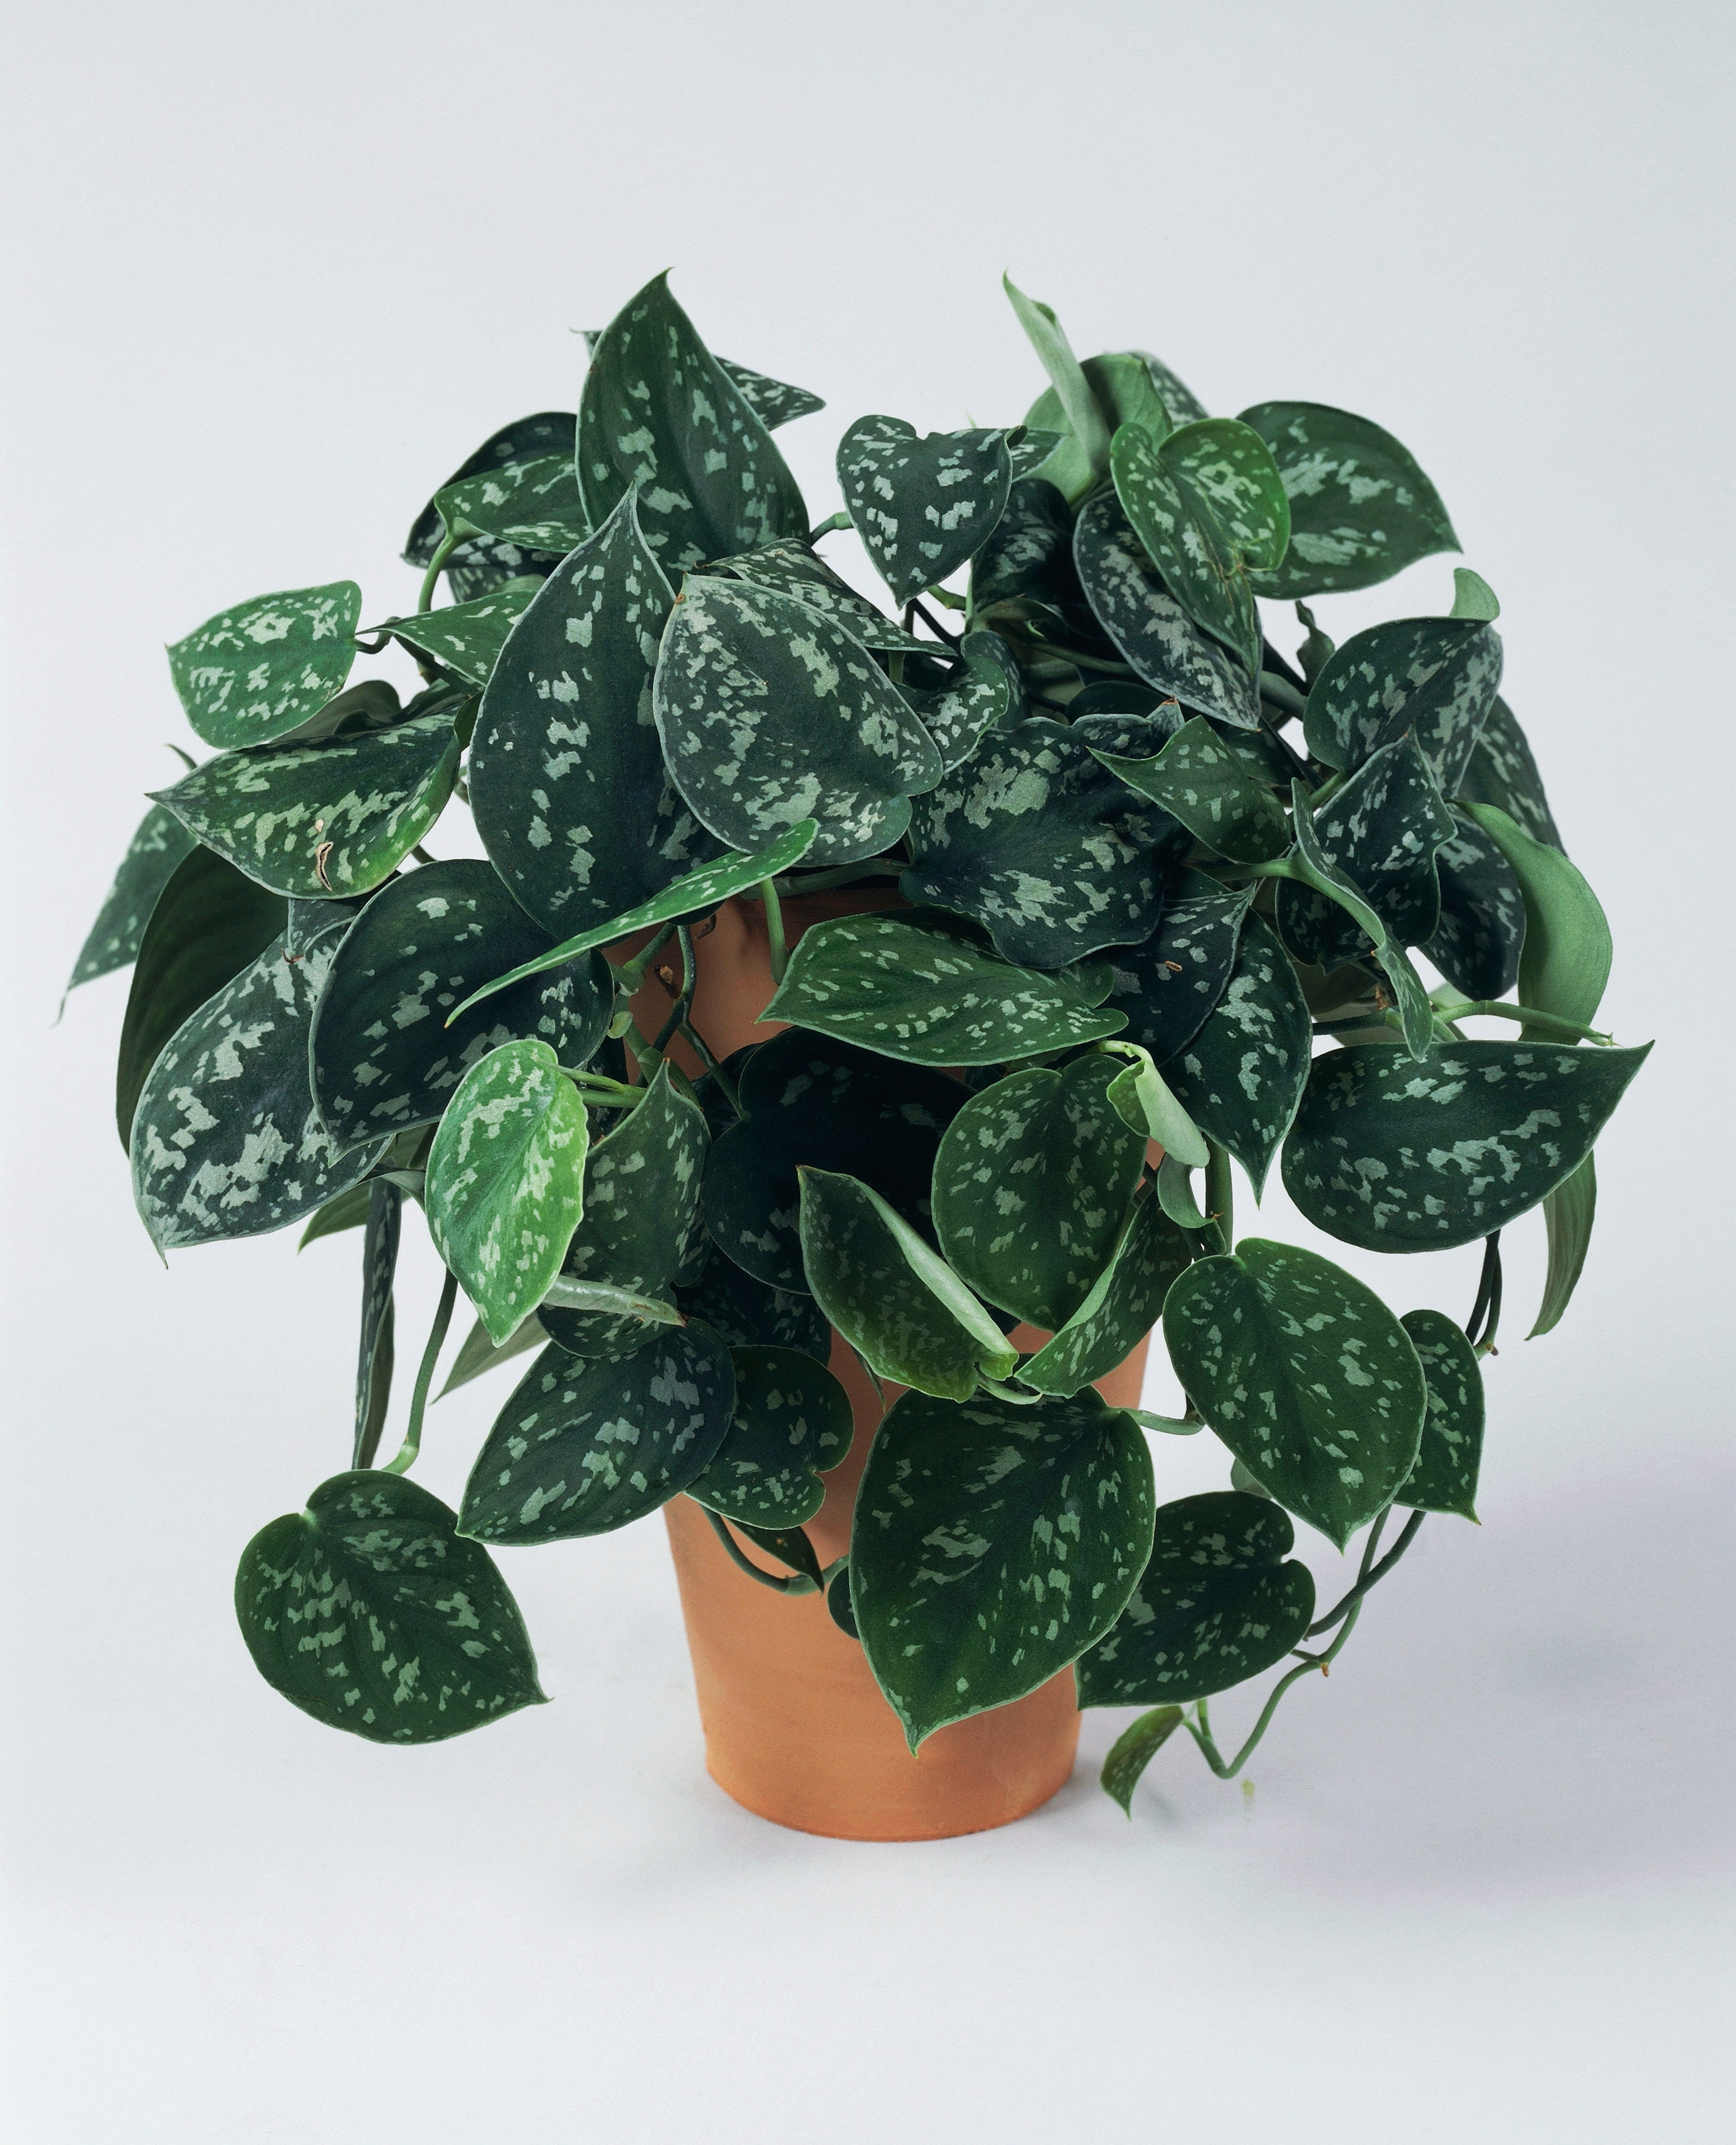 Think You Love Houseplants? This One Just Sold for Almost $20,000